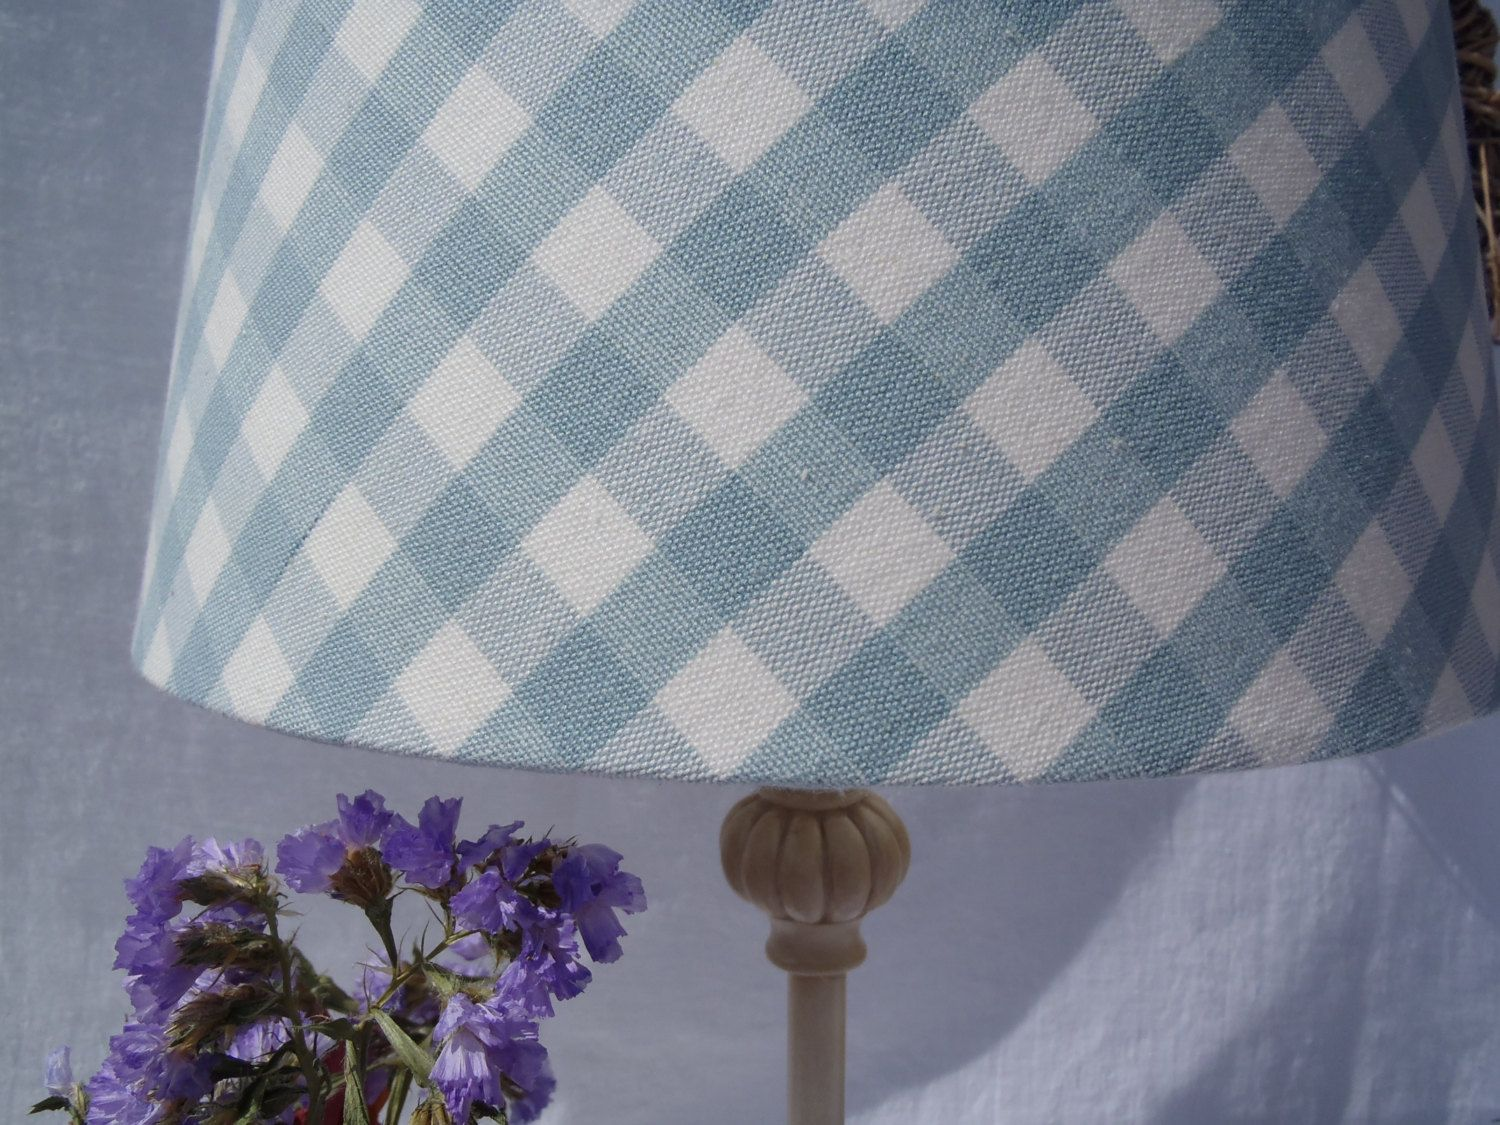 Duck egg blue gingham lampshade in laura ashley woven cotton fabric duck egg blue gingham lampshade in laura ashley woven cotton fabric by lightandbeautiful on etsy aloadofball Image collections